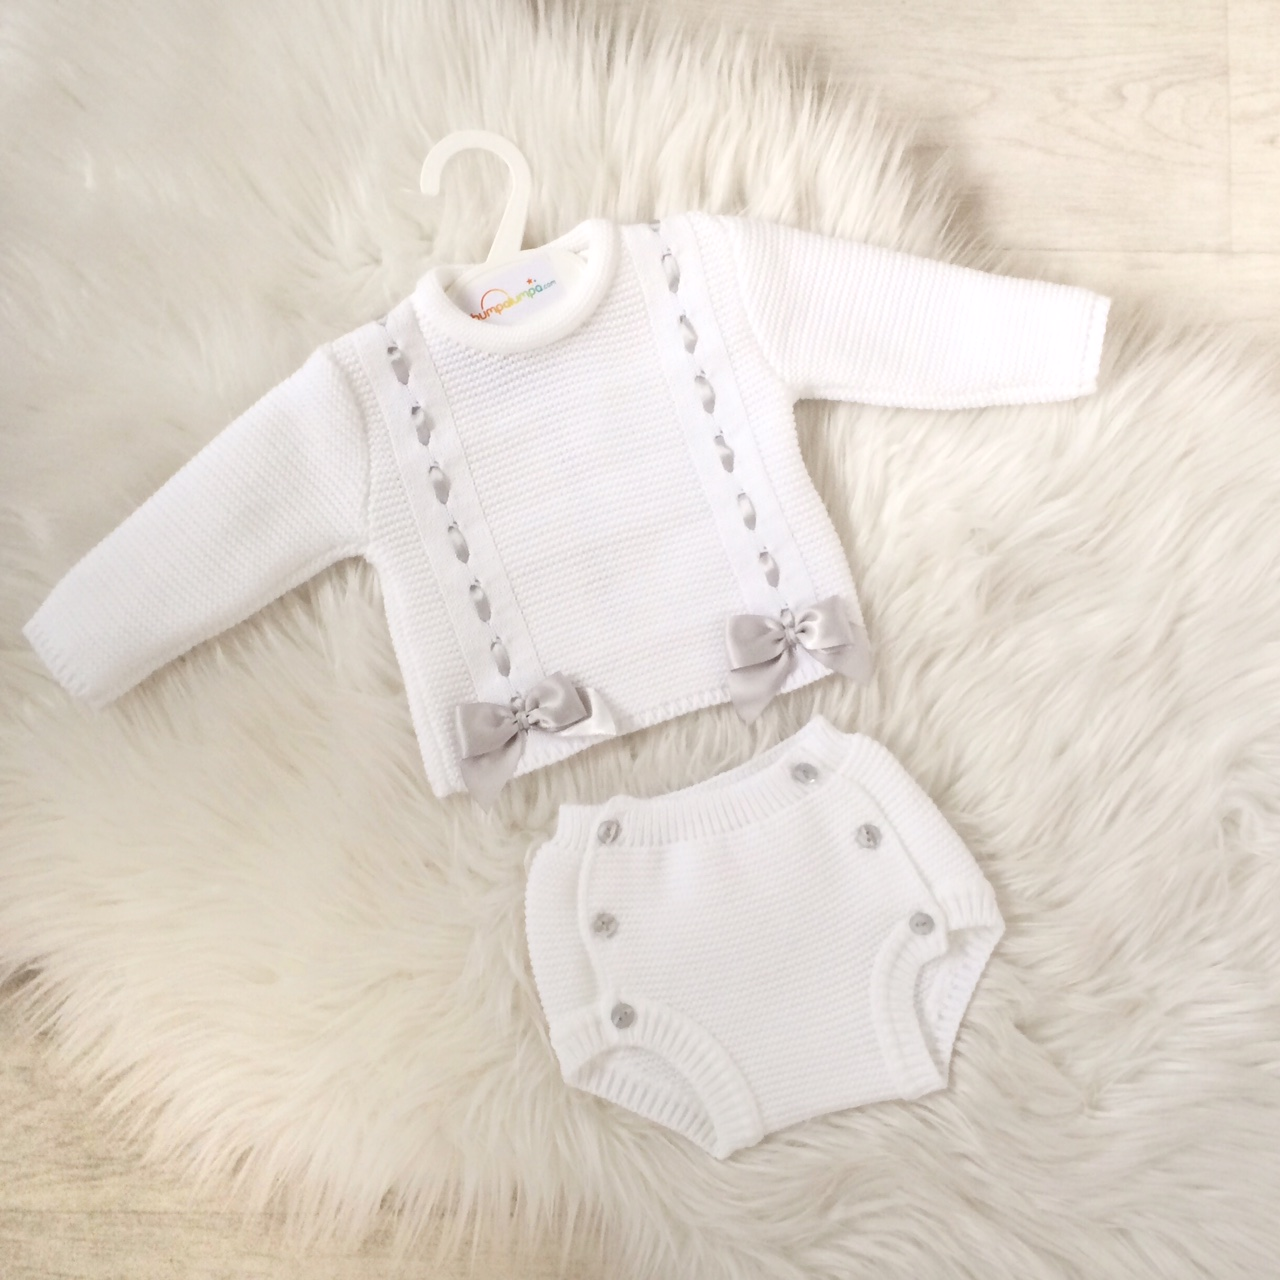 Baby Girls White Knitted Outfit